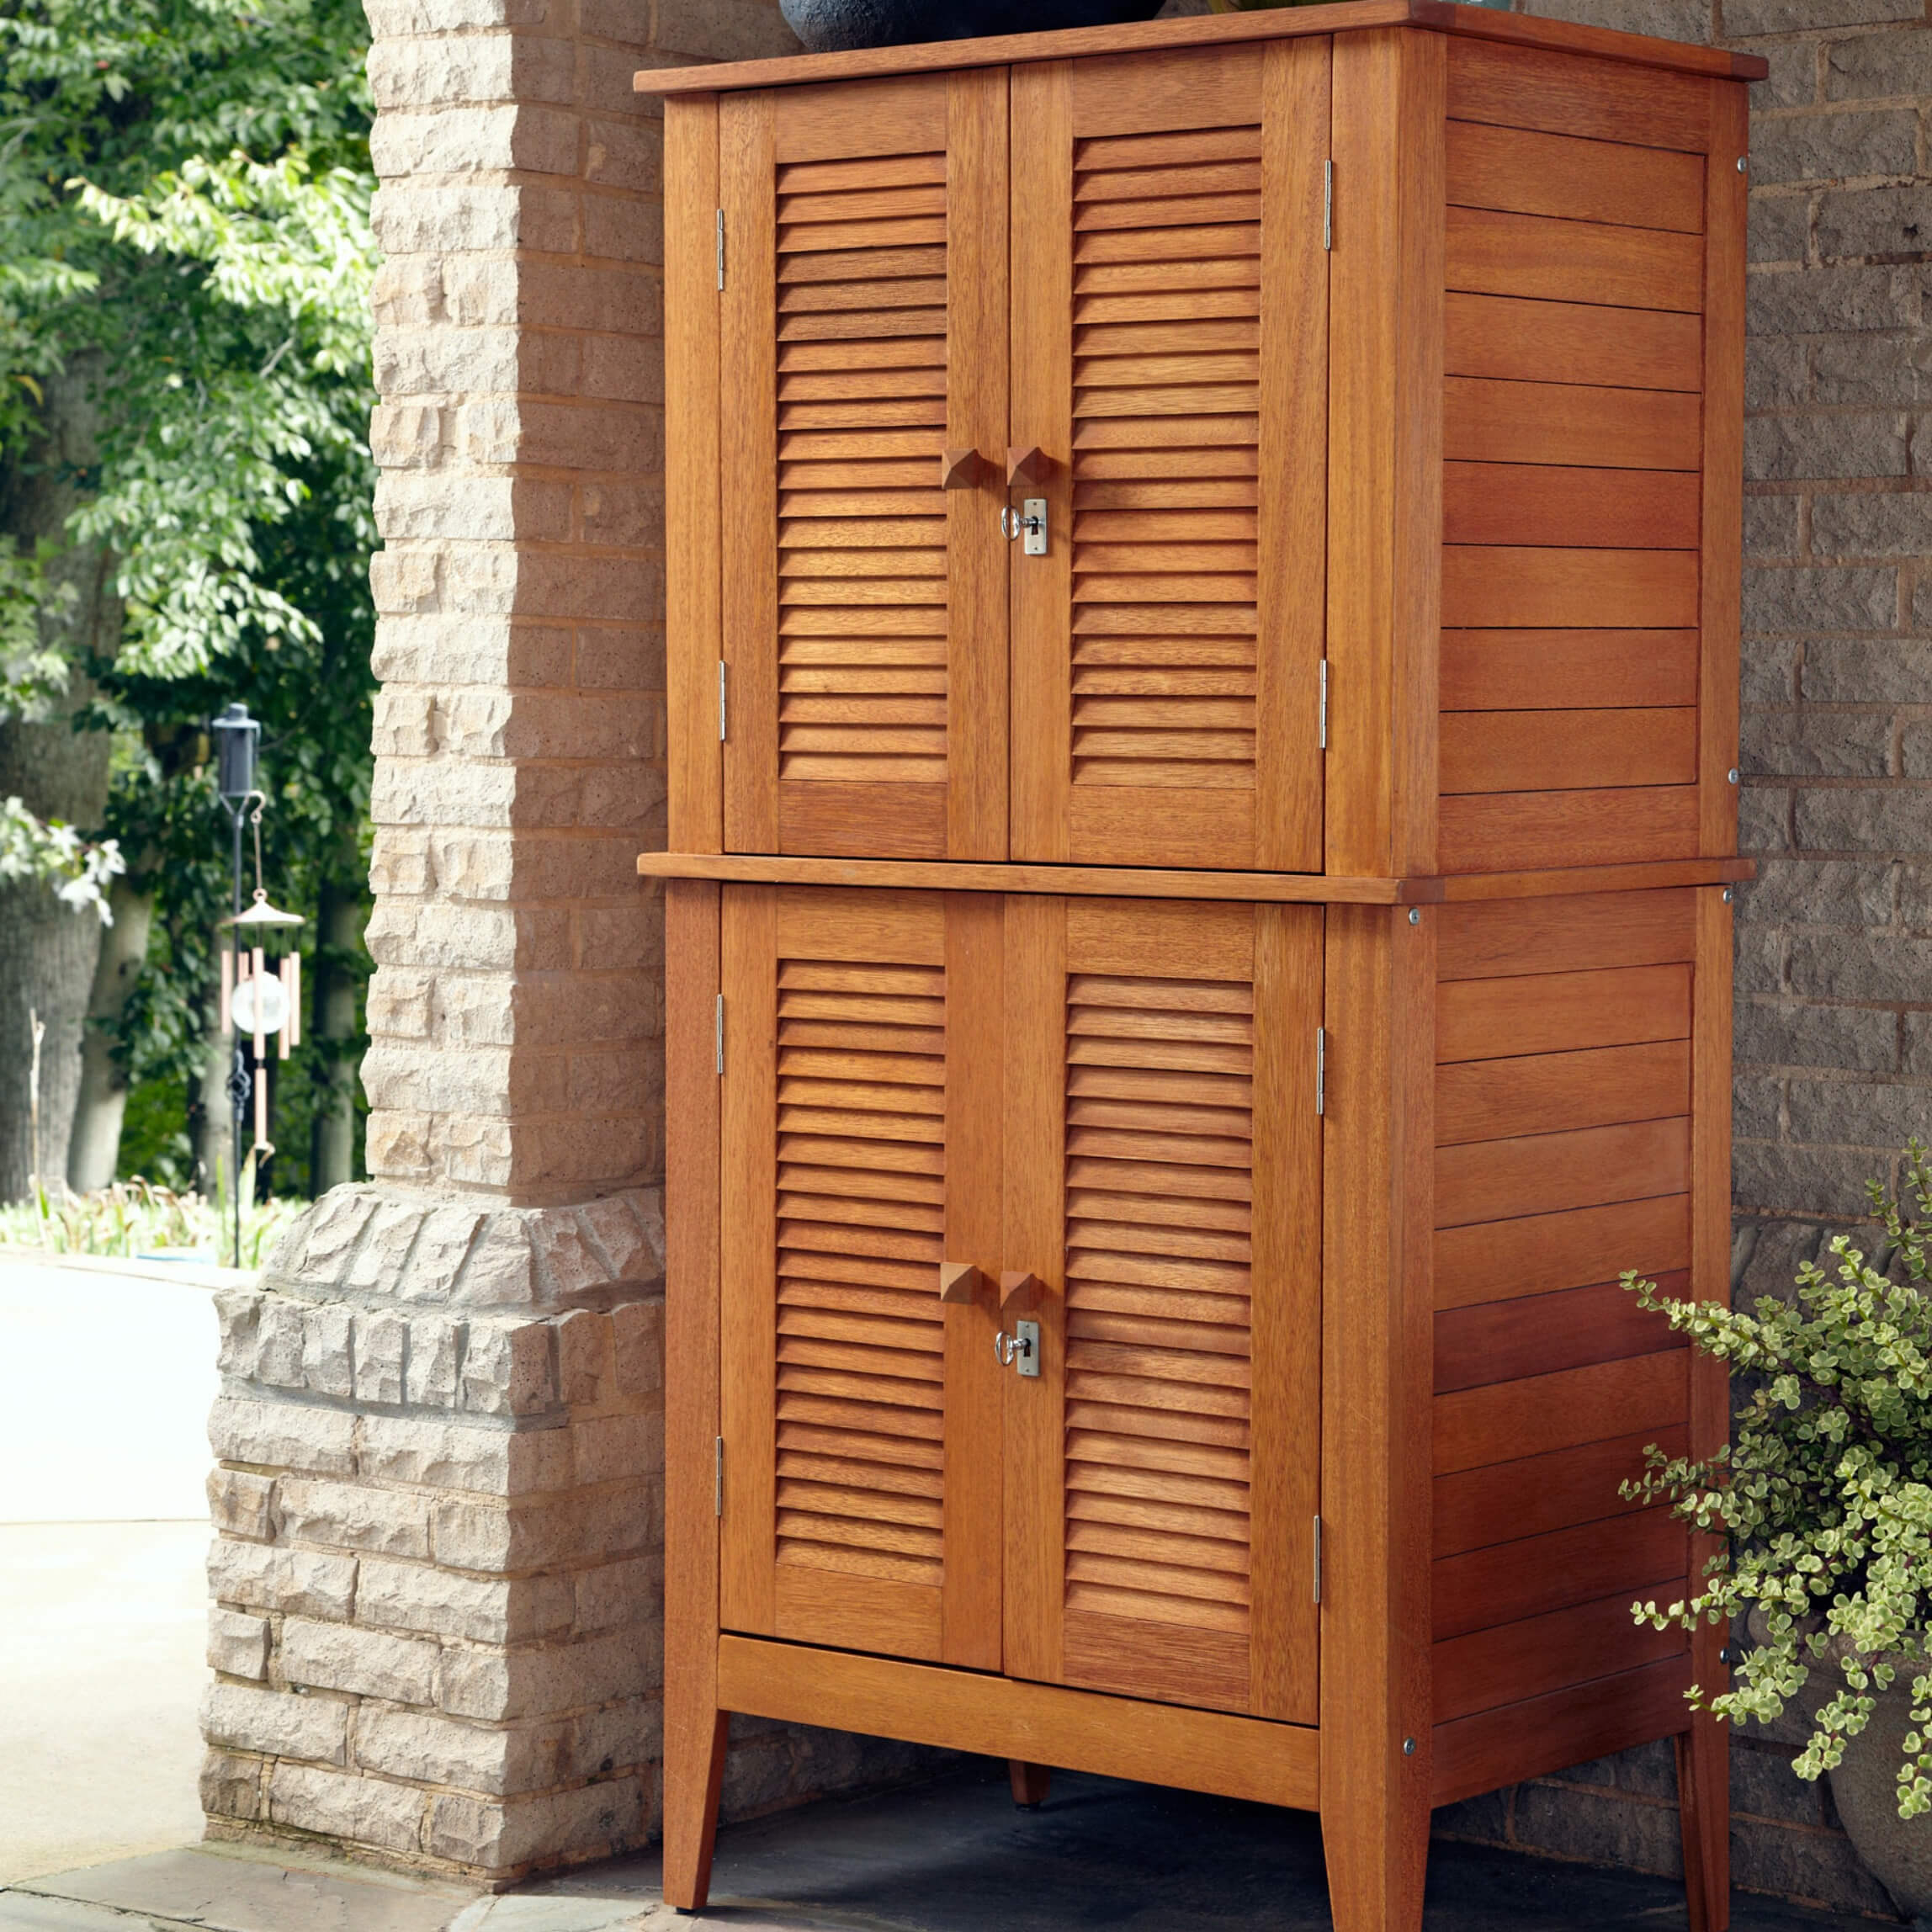 Top 10 Types Of Outdoor Deck Storage Boxes throughout dimensions 2296 X 2296